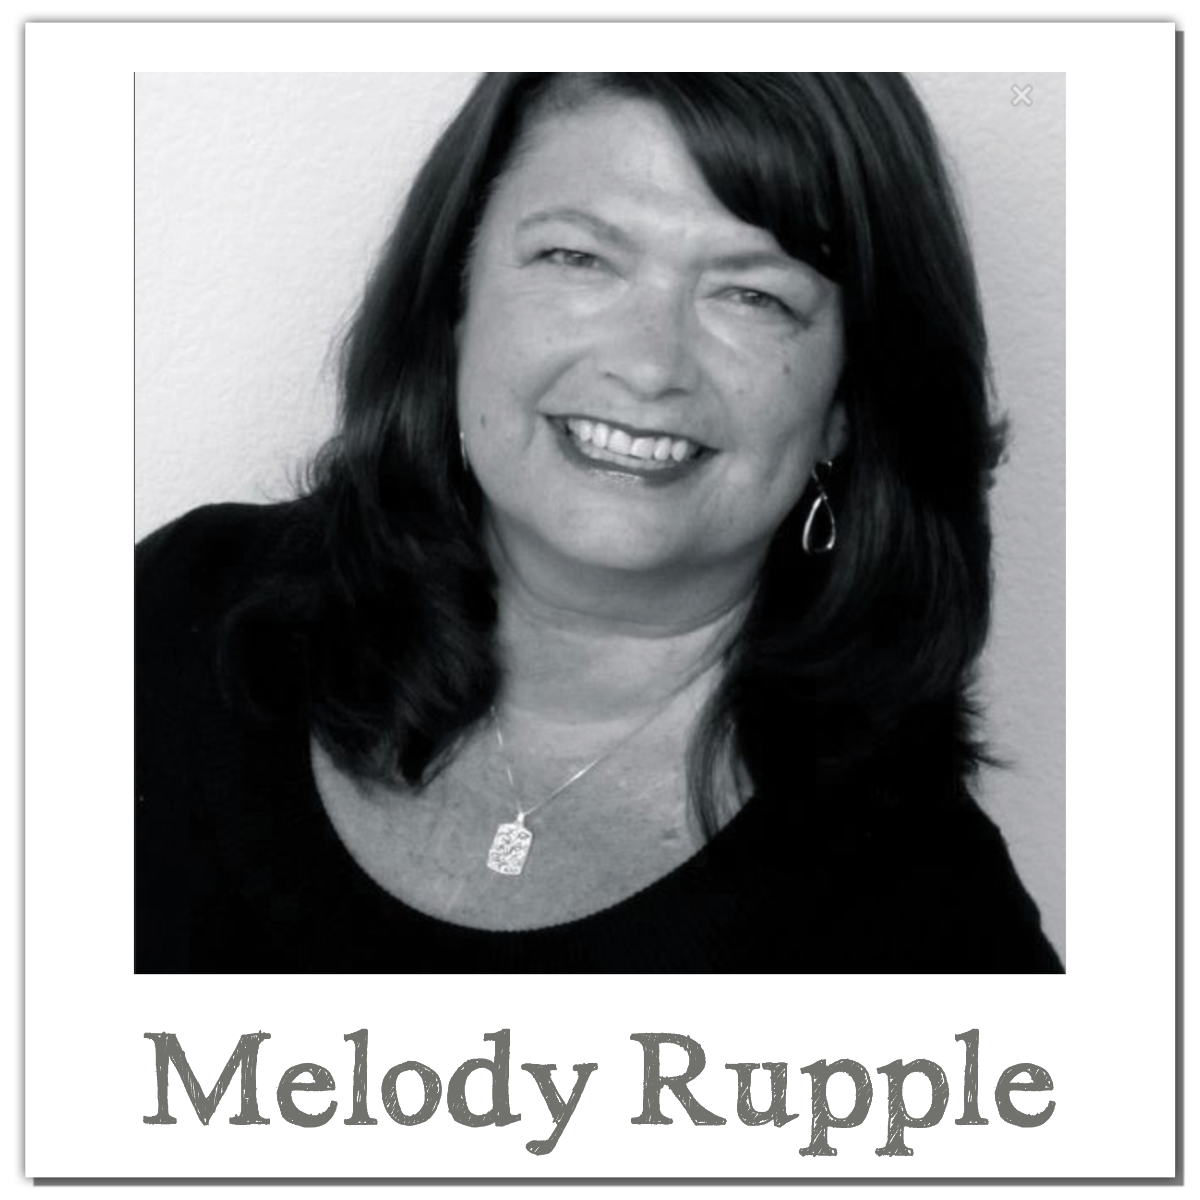 Melody Rupple